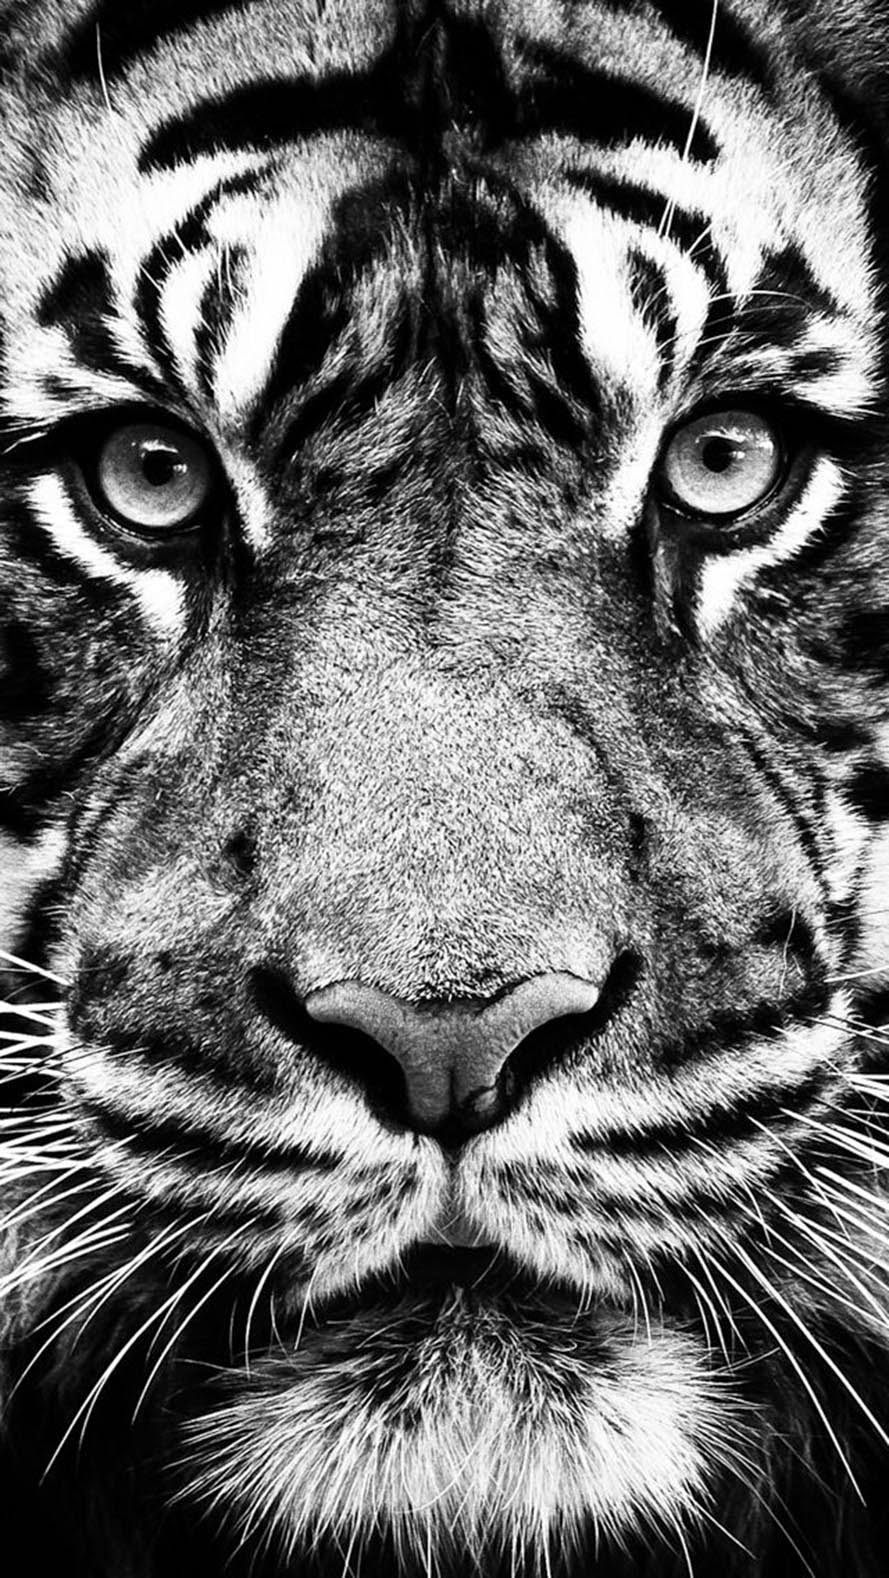 Cool Iphone 7 Wallpaper Hd 175 Check More At Http All Images Net Iphone 7 Wallpaper Hd 175 Tiger Wallpaper Big Cats Art Animals Black And White